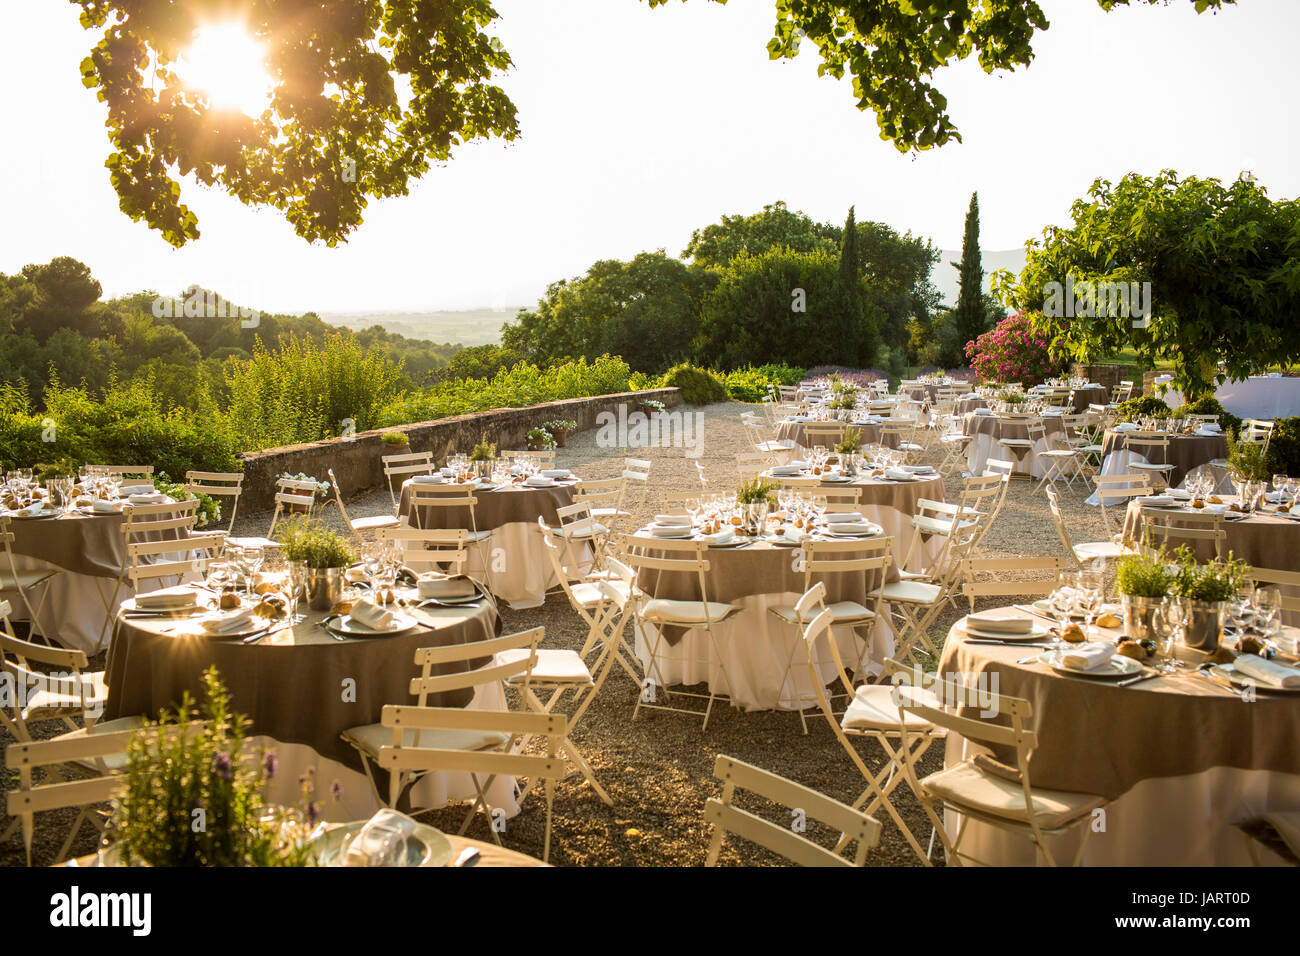 Wedding setup in South of France - Stock Image